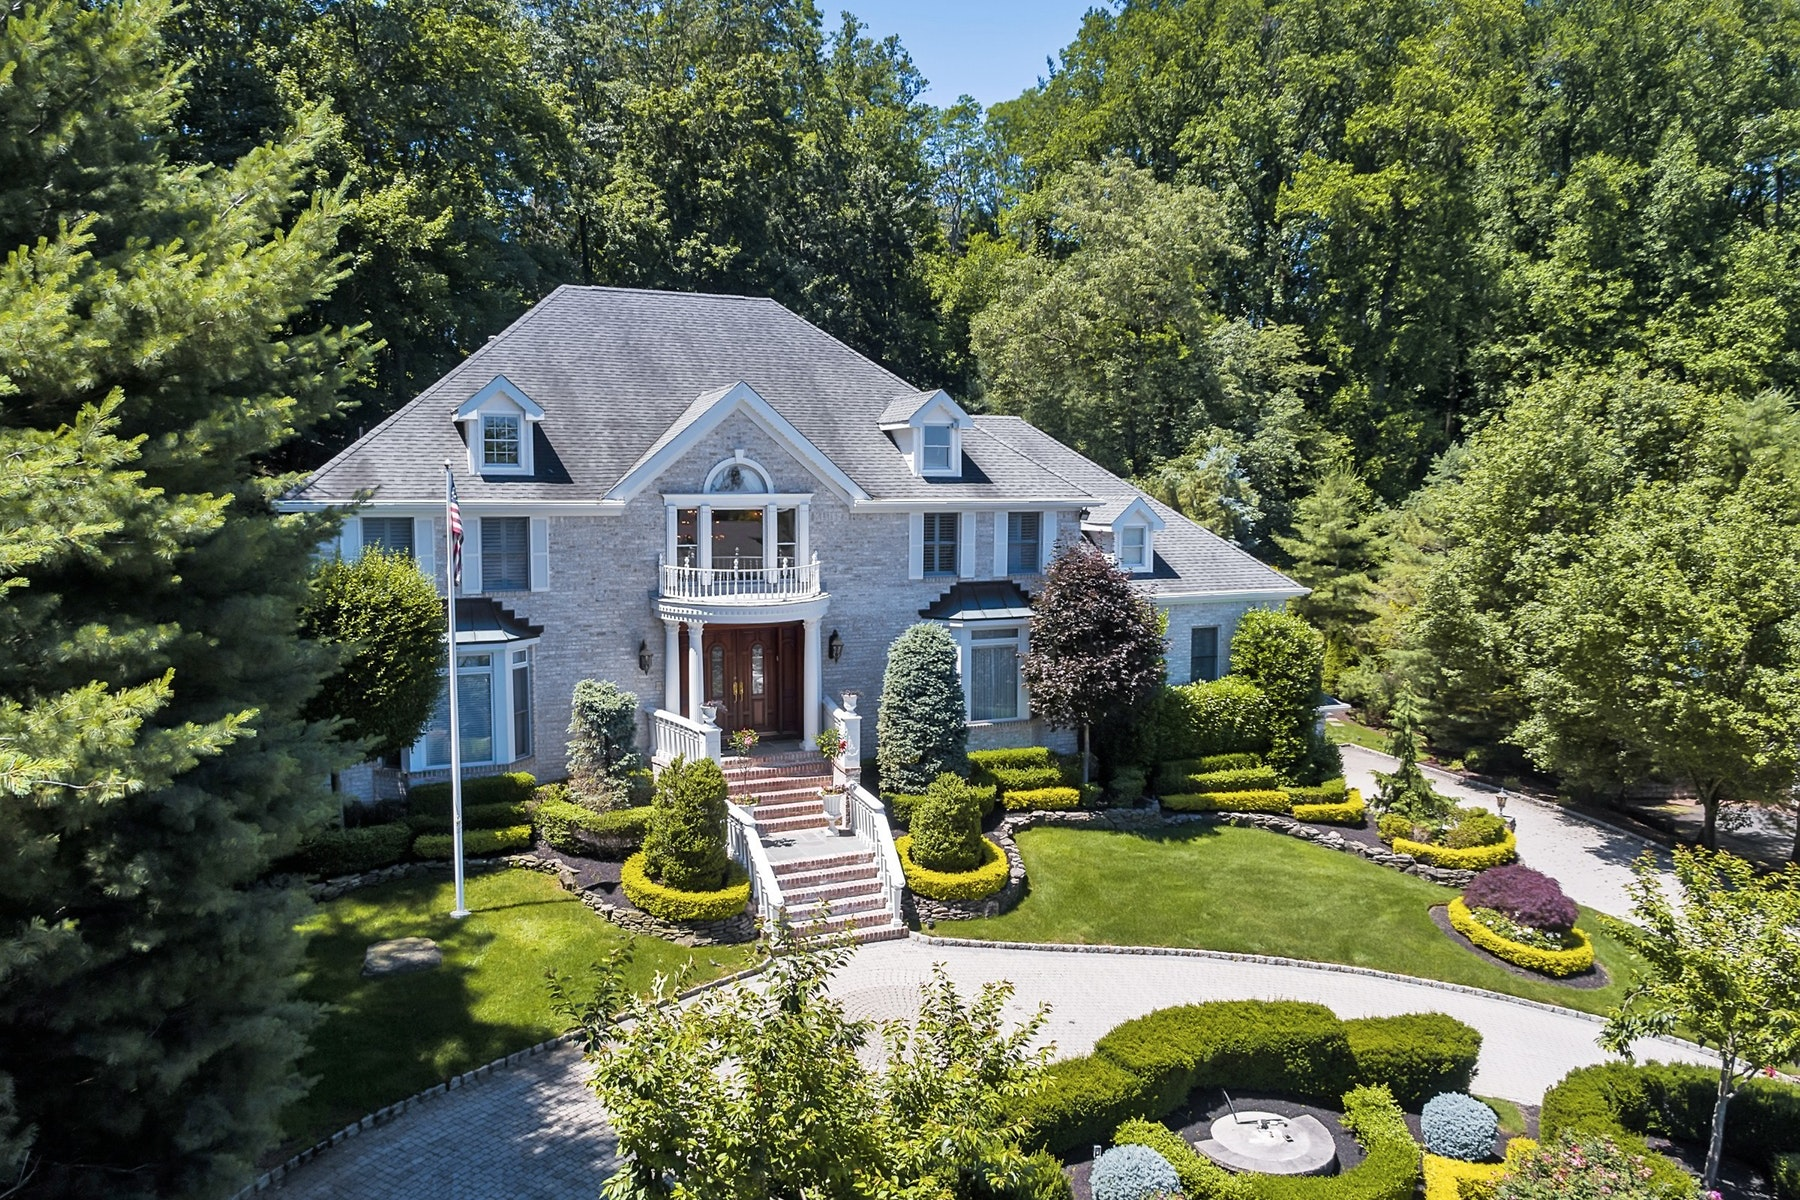 Single Family Home for Sale at Pure Elegance on 1.31 acres of Land 66 Takolusa Drive Holmdel, New Jersey 07733 United States